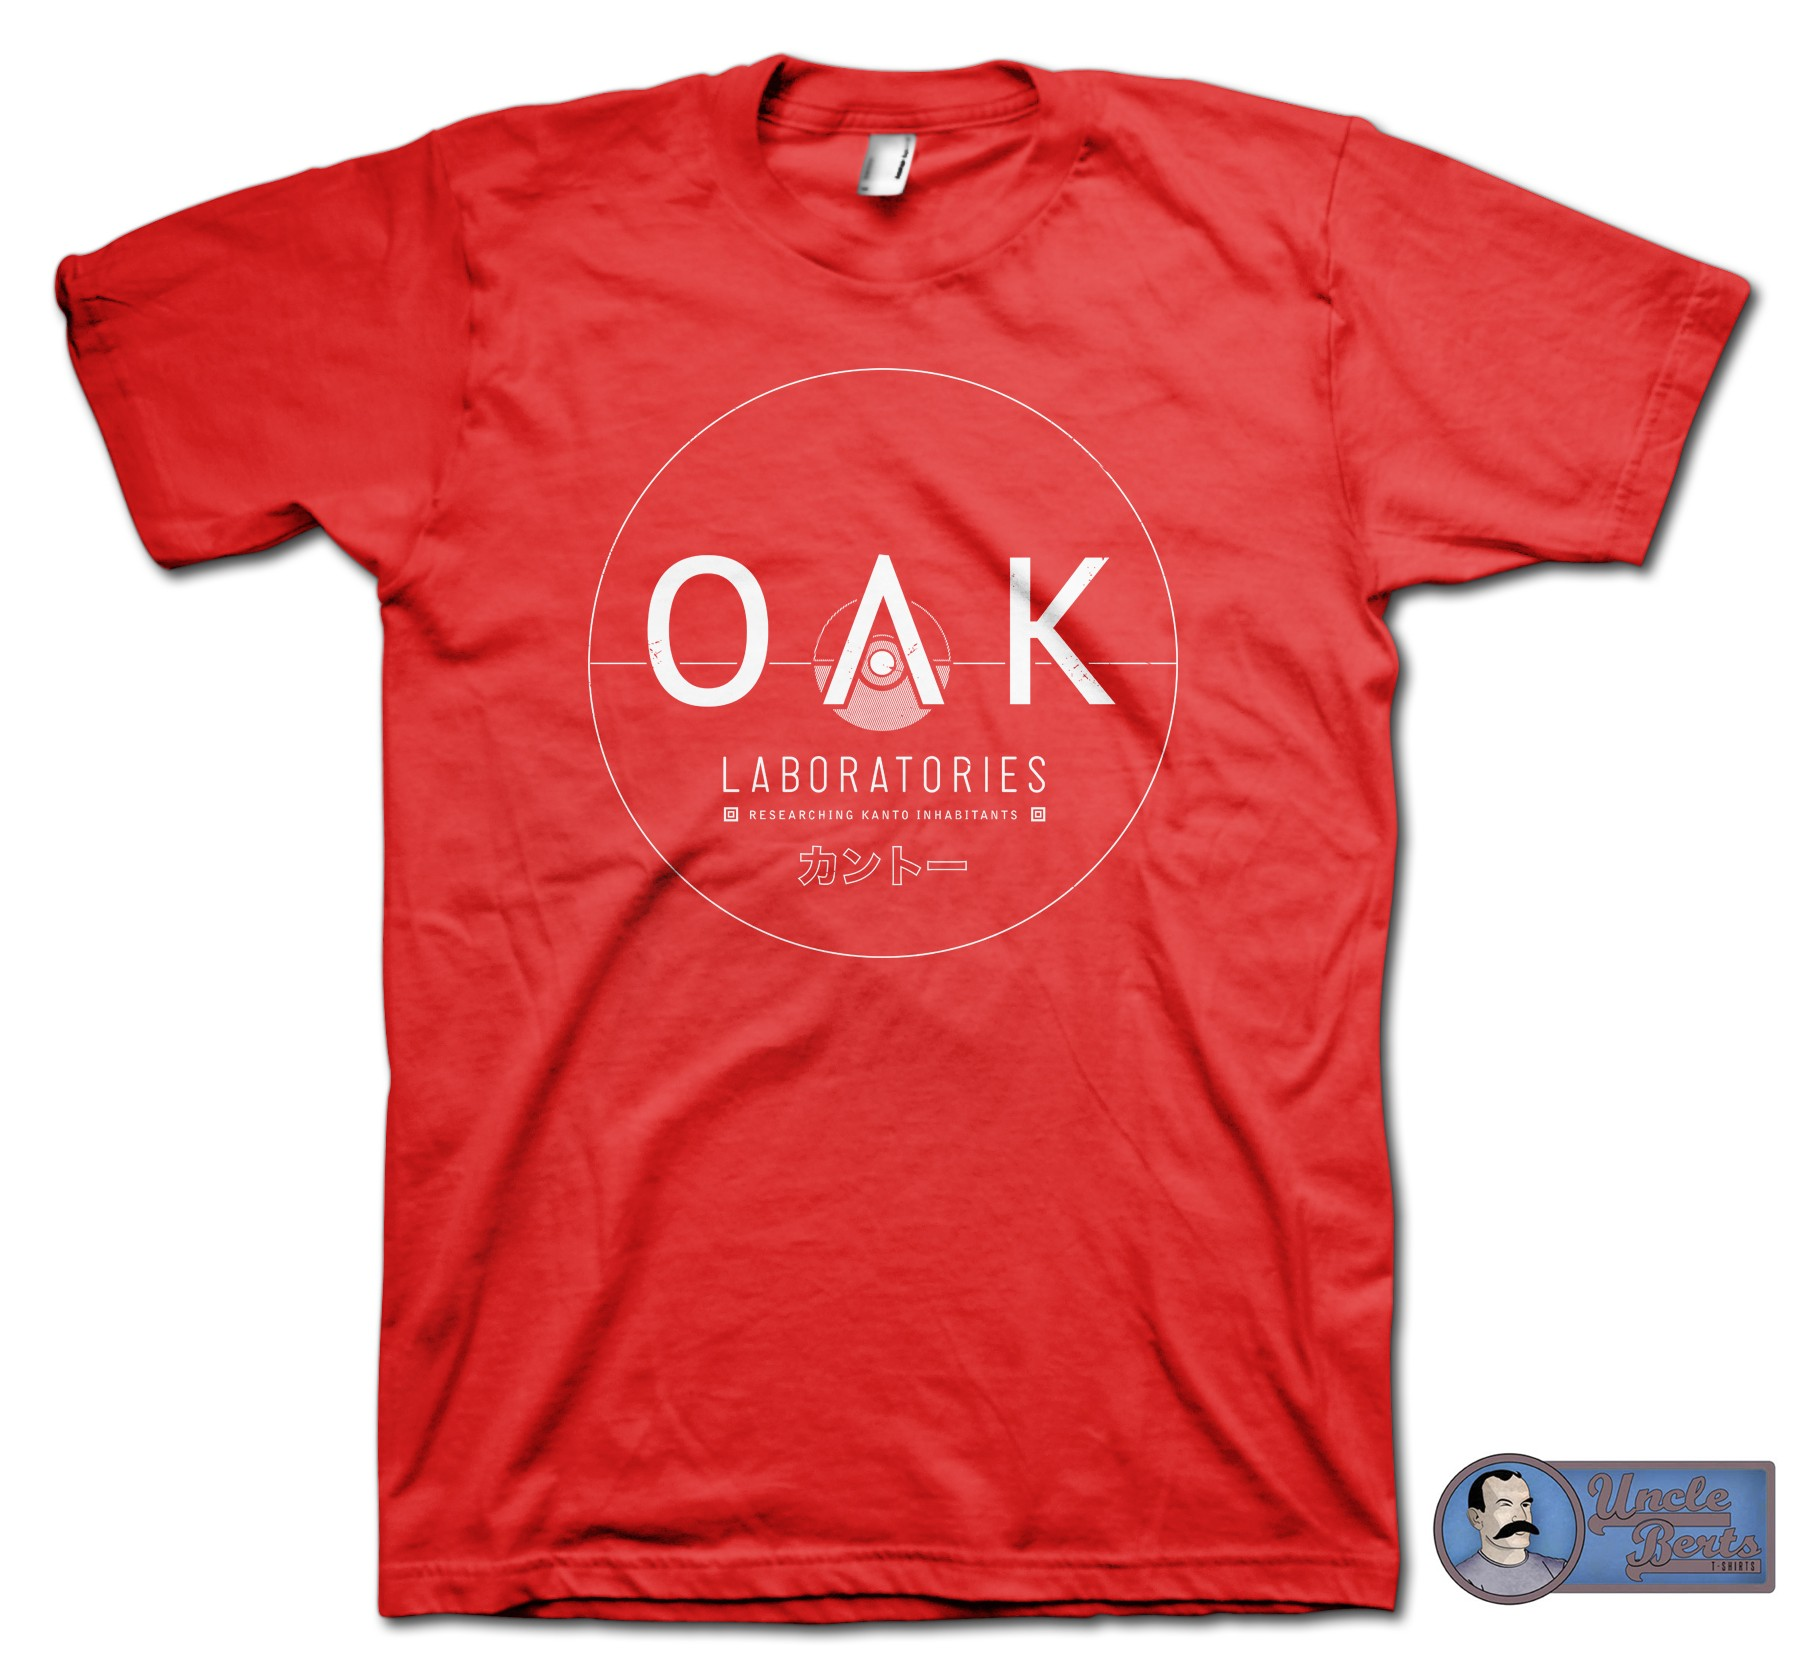 Oak Laboratories T-Shirt - inspired by the Pokemon series